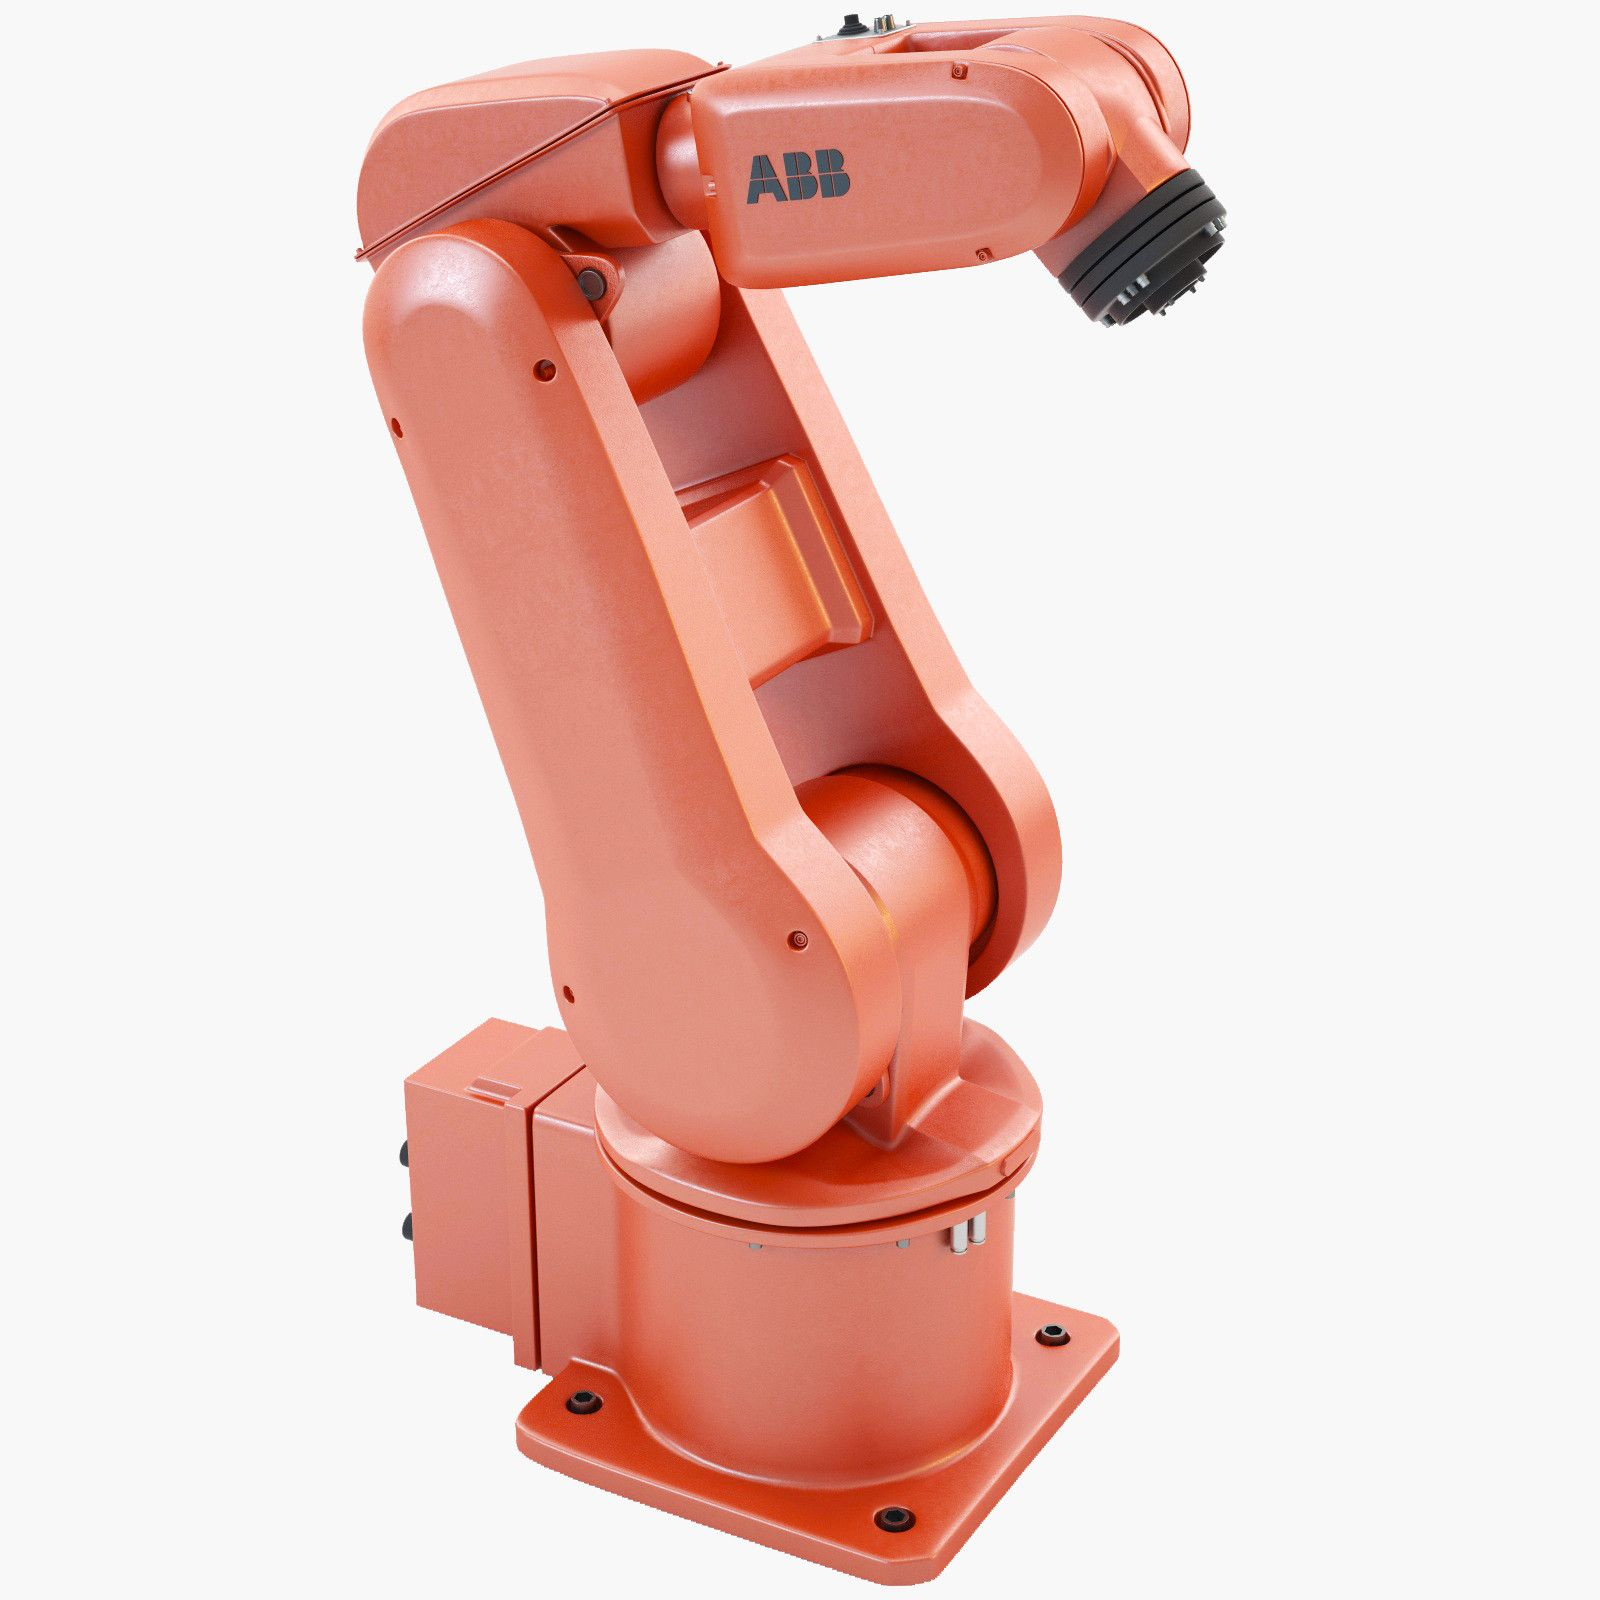 76221860a2dbd9602a4adf3893891609 max industrial robotic arm irb details pinterest industrial  at creativeand.co